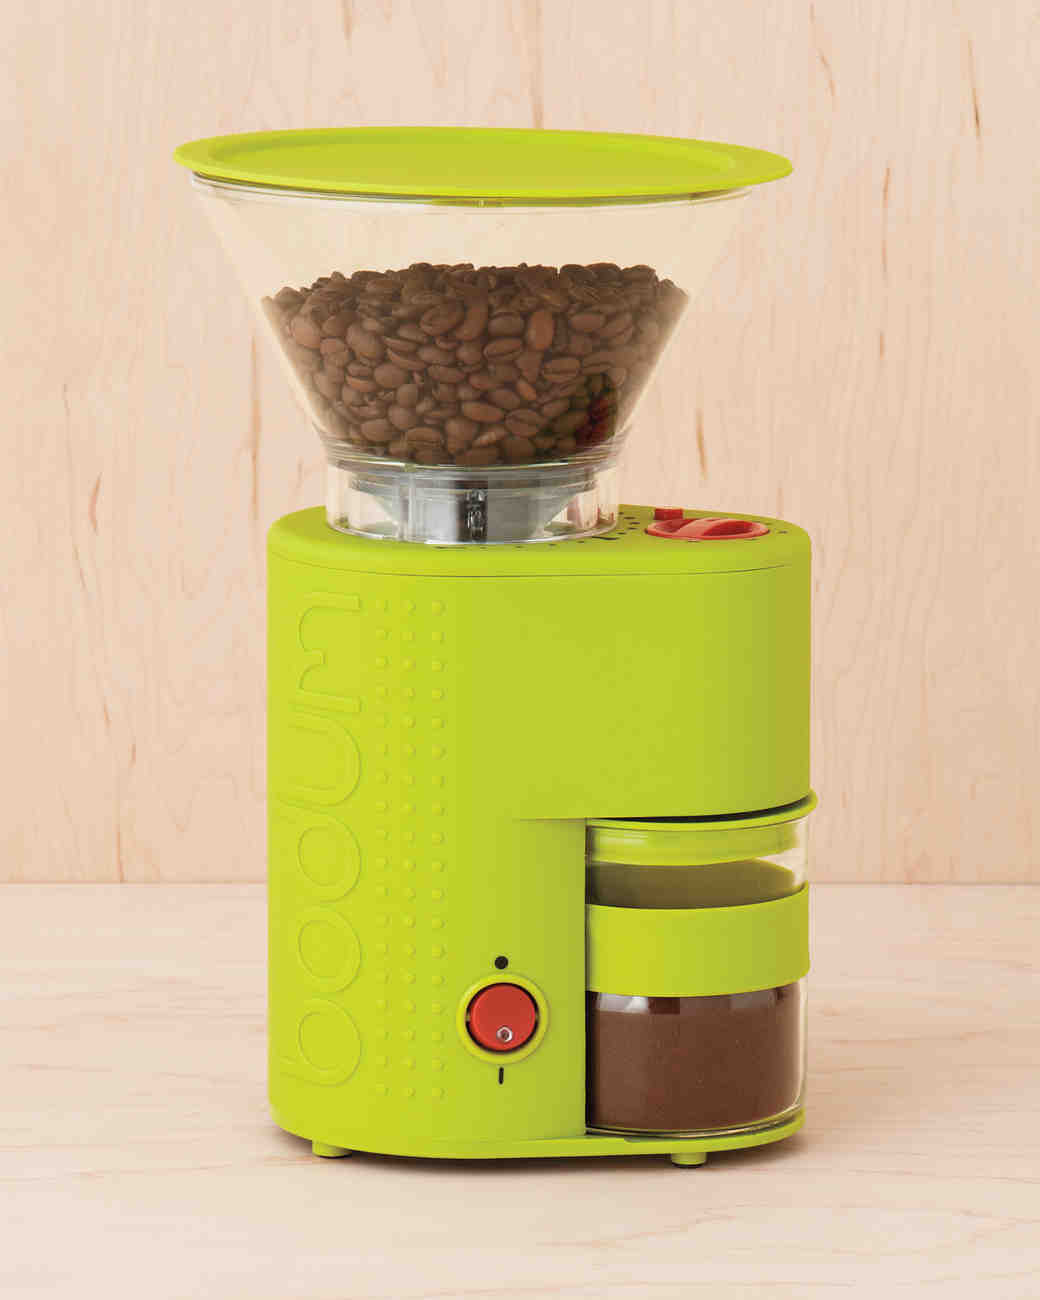 coffee-grinder-005-mwd109796.jpg